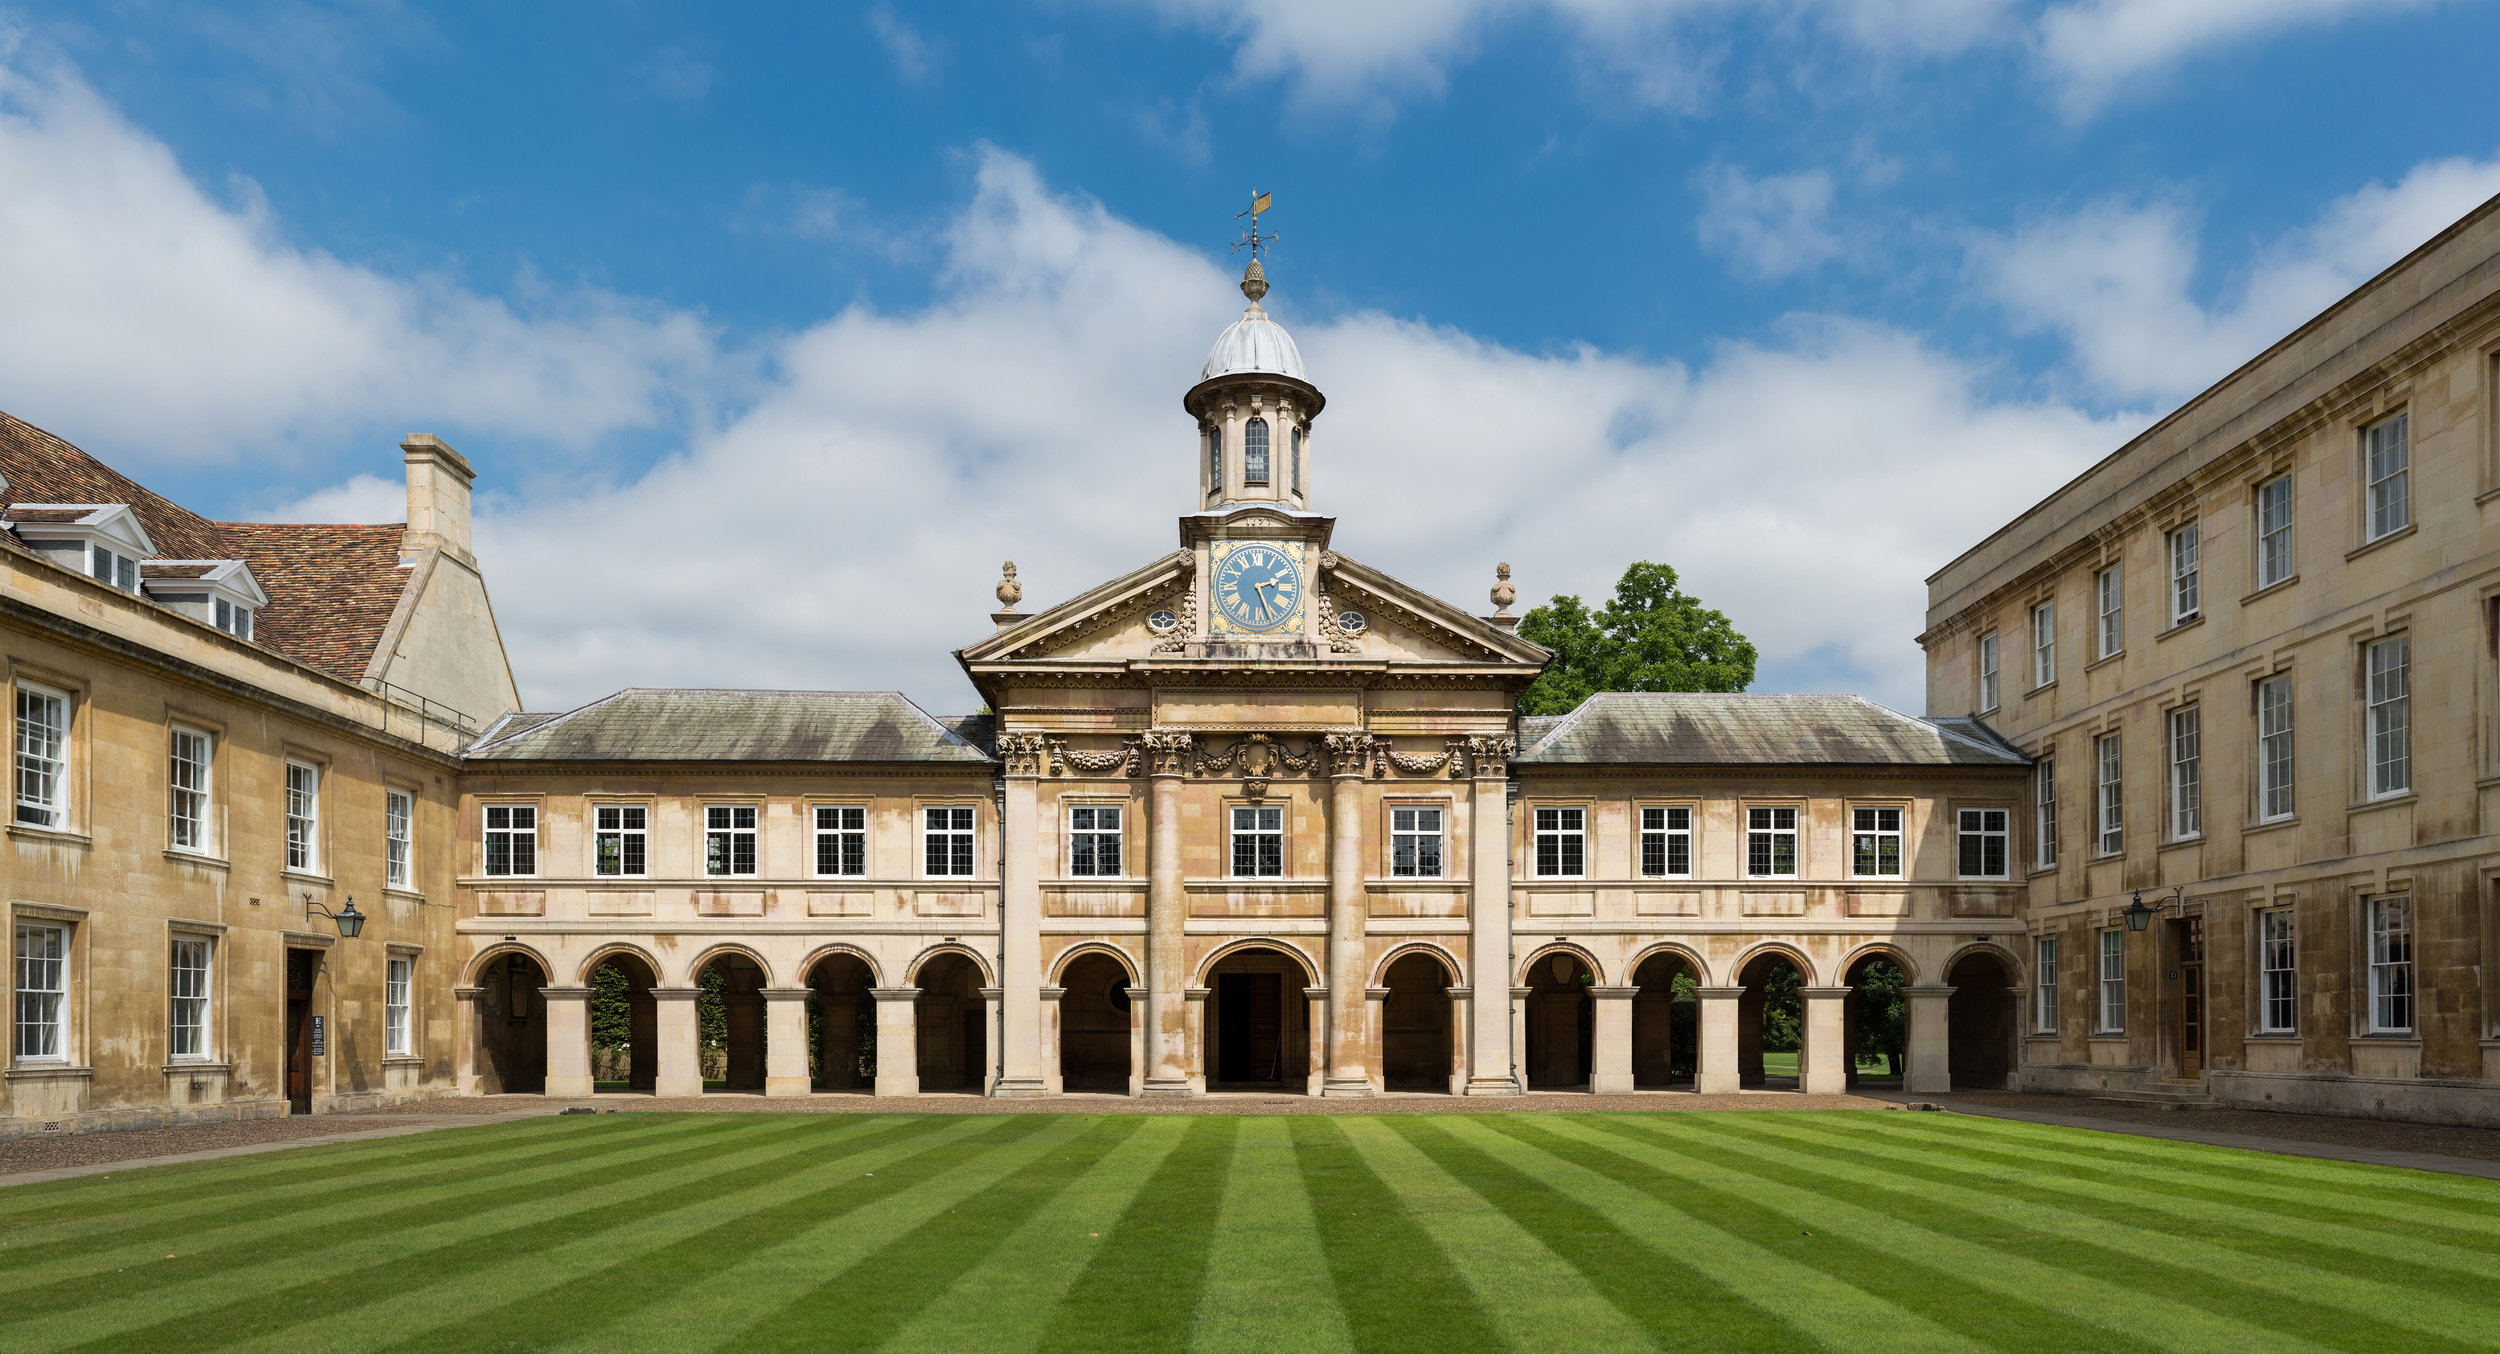 Emmanuel_College_Front_Court,_Cambridge,_UK_-_Diliff.jpg